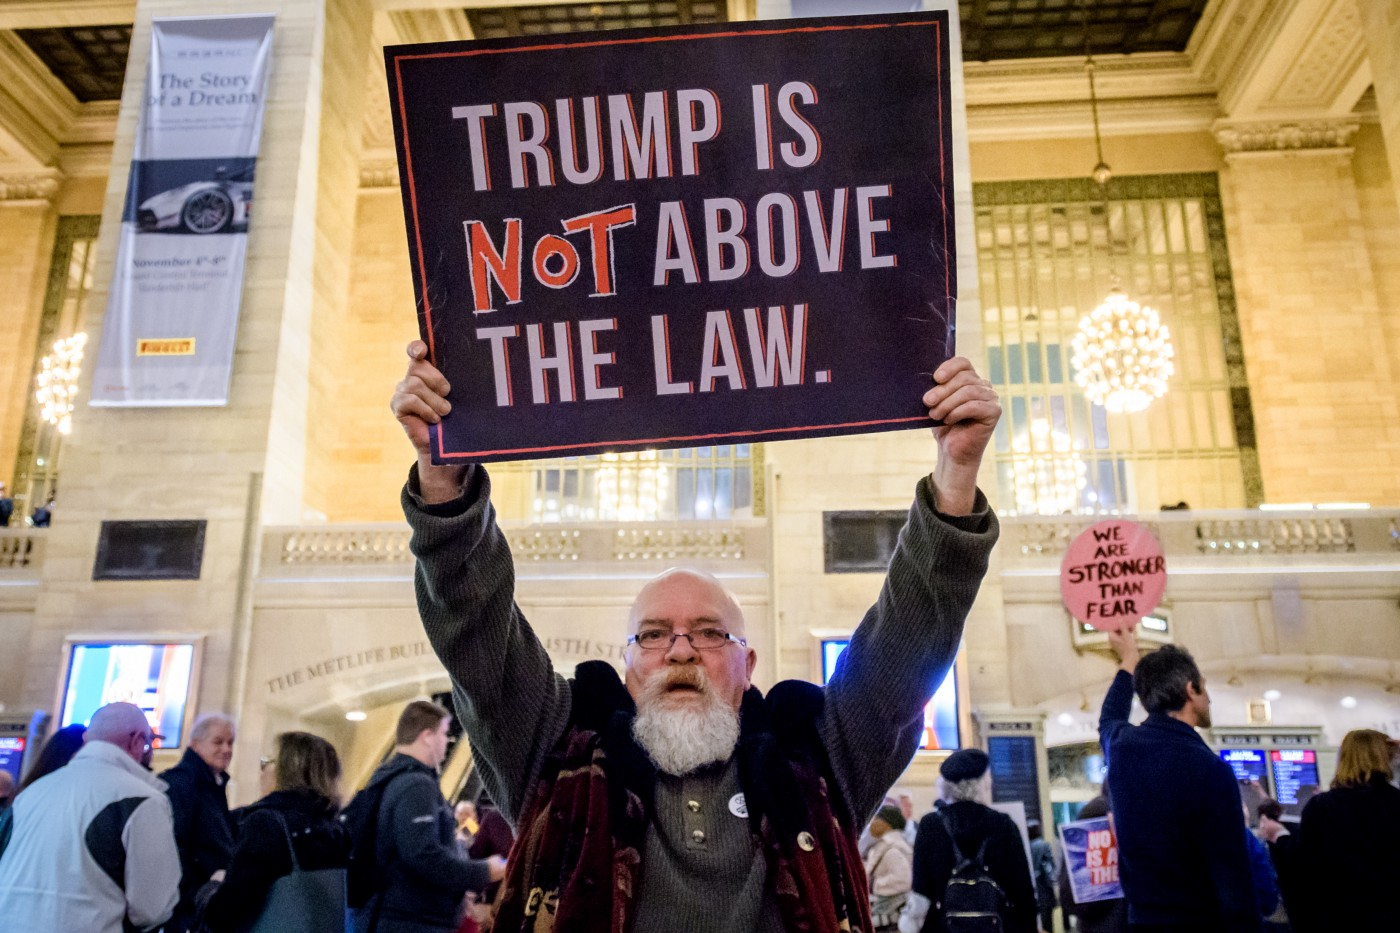 """A protestor holds a sign that says """"Trump is NOT above the law."""""""